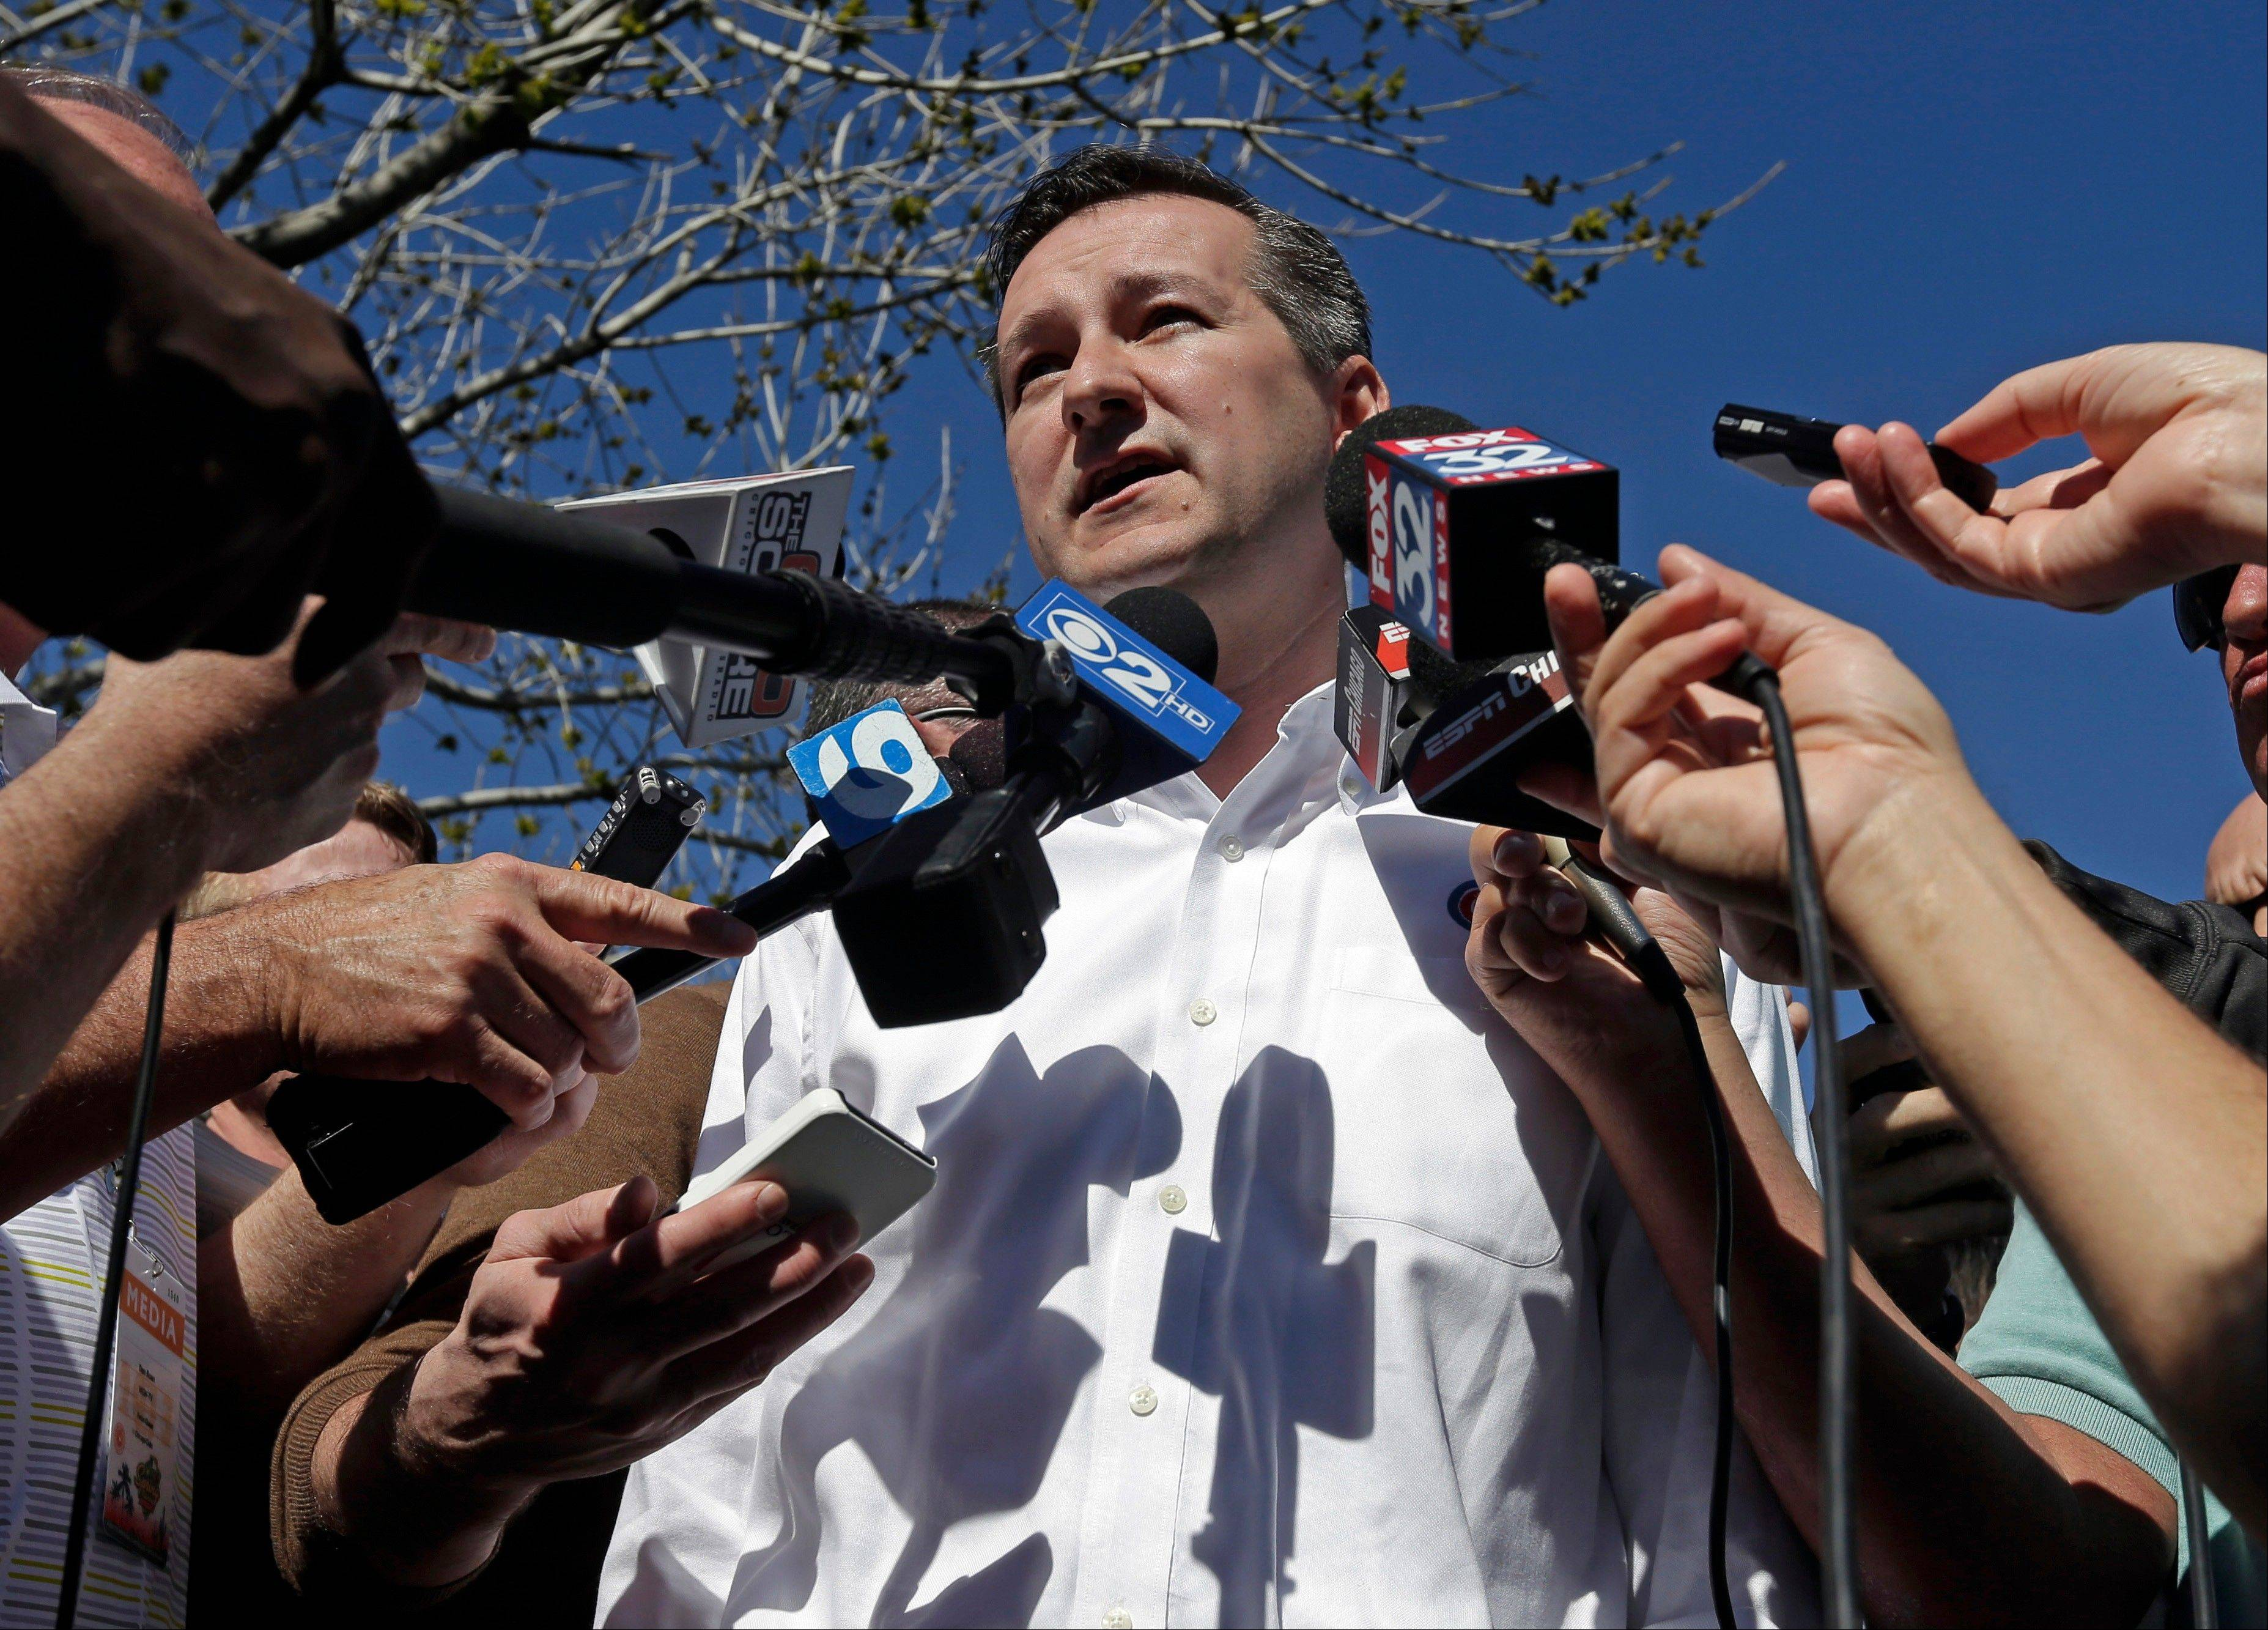 Cubs chairman Tom Ricketts has played businessman hardball in negotiations to renovate Wrigley Field.